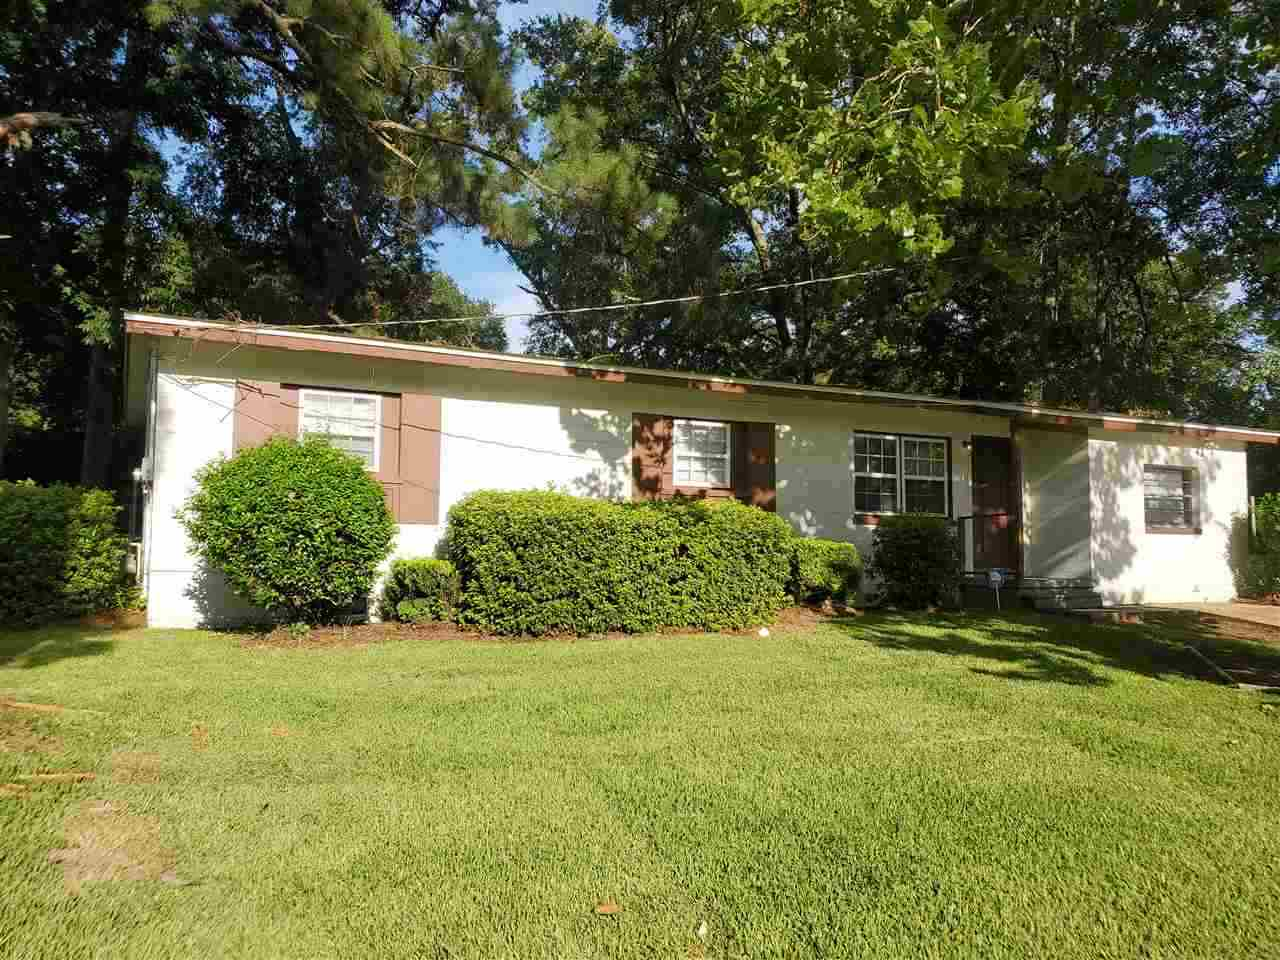 Great Investment Opportunity minutes away from FSU. This home offers a 3/1 with Bonus Room. The bonus room can easily be converted to a bedroom with a bathroom which will convert this home to a 4/2. This home is currently being rented at $1135 a month with a lease expiration of 7/31/2021. Schedule your appointment today to see this great income producing property.